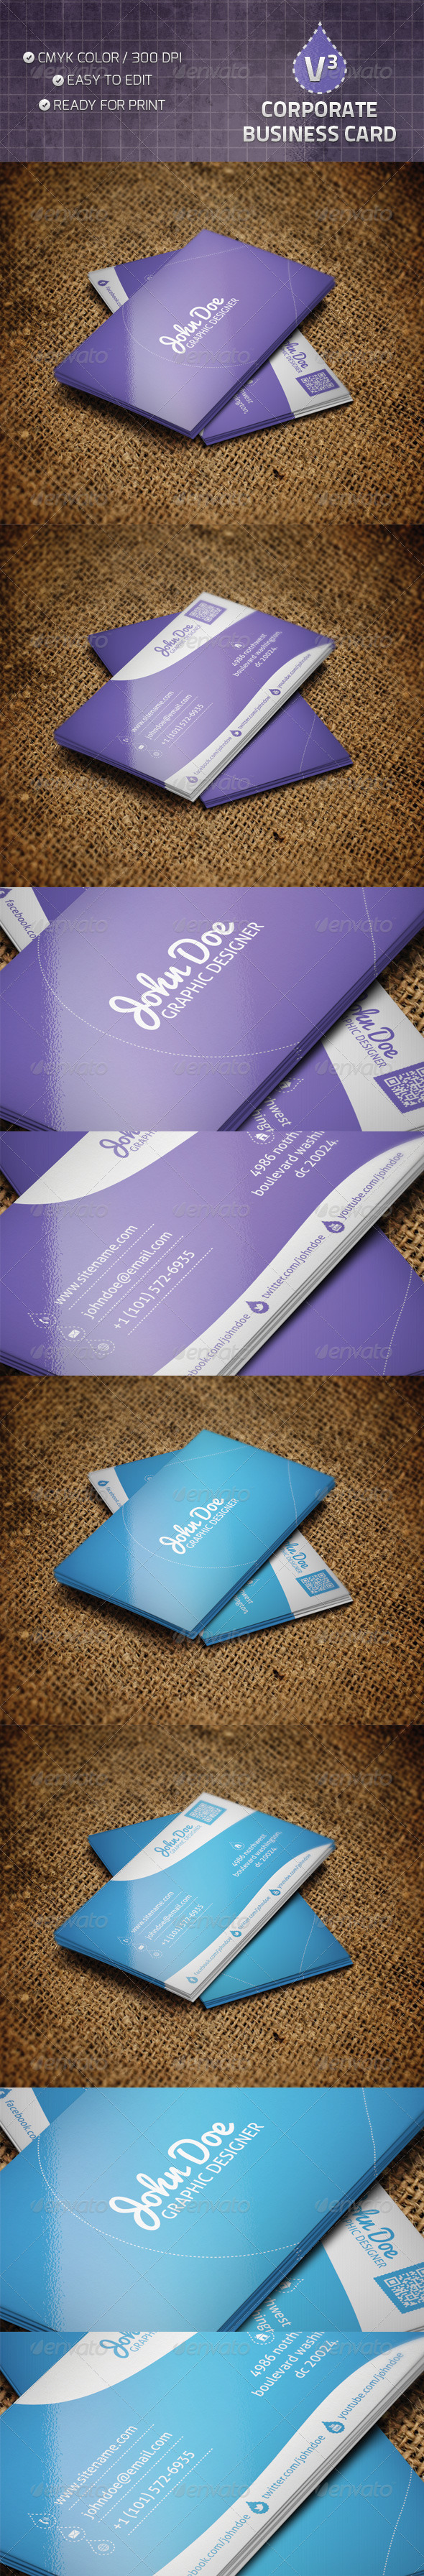 Corporate Business Card V3 - Corporate Business Cards